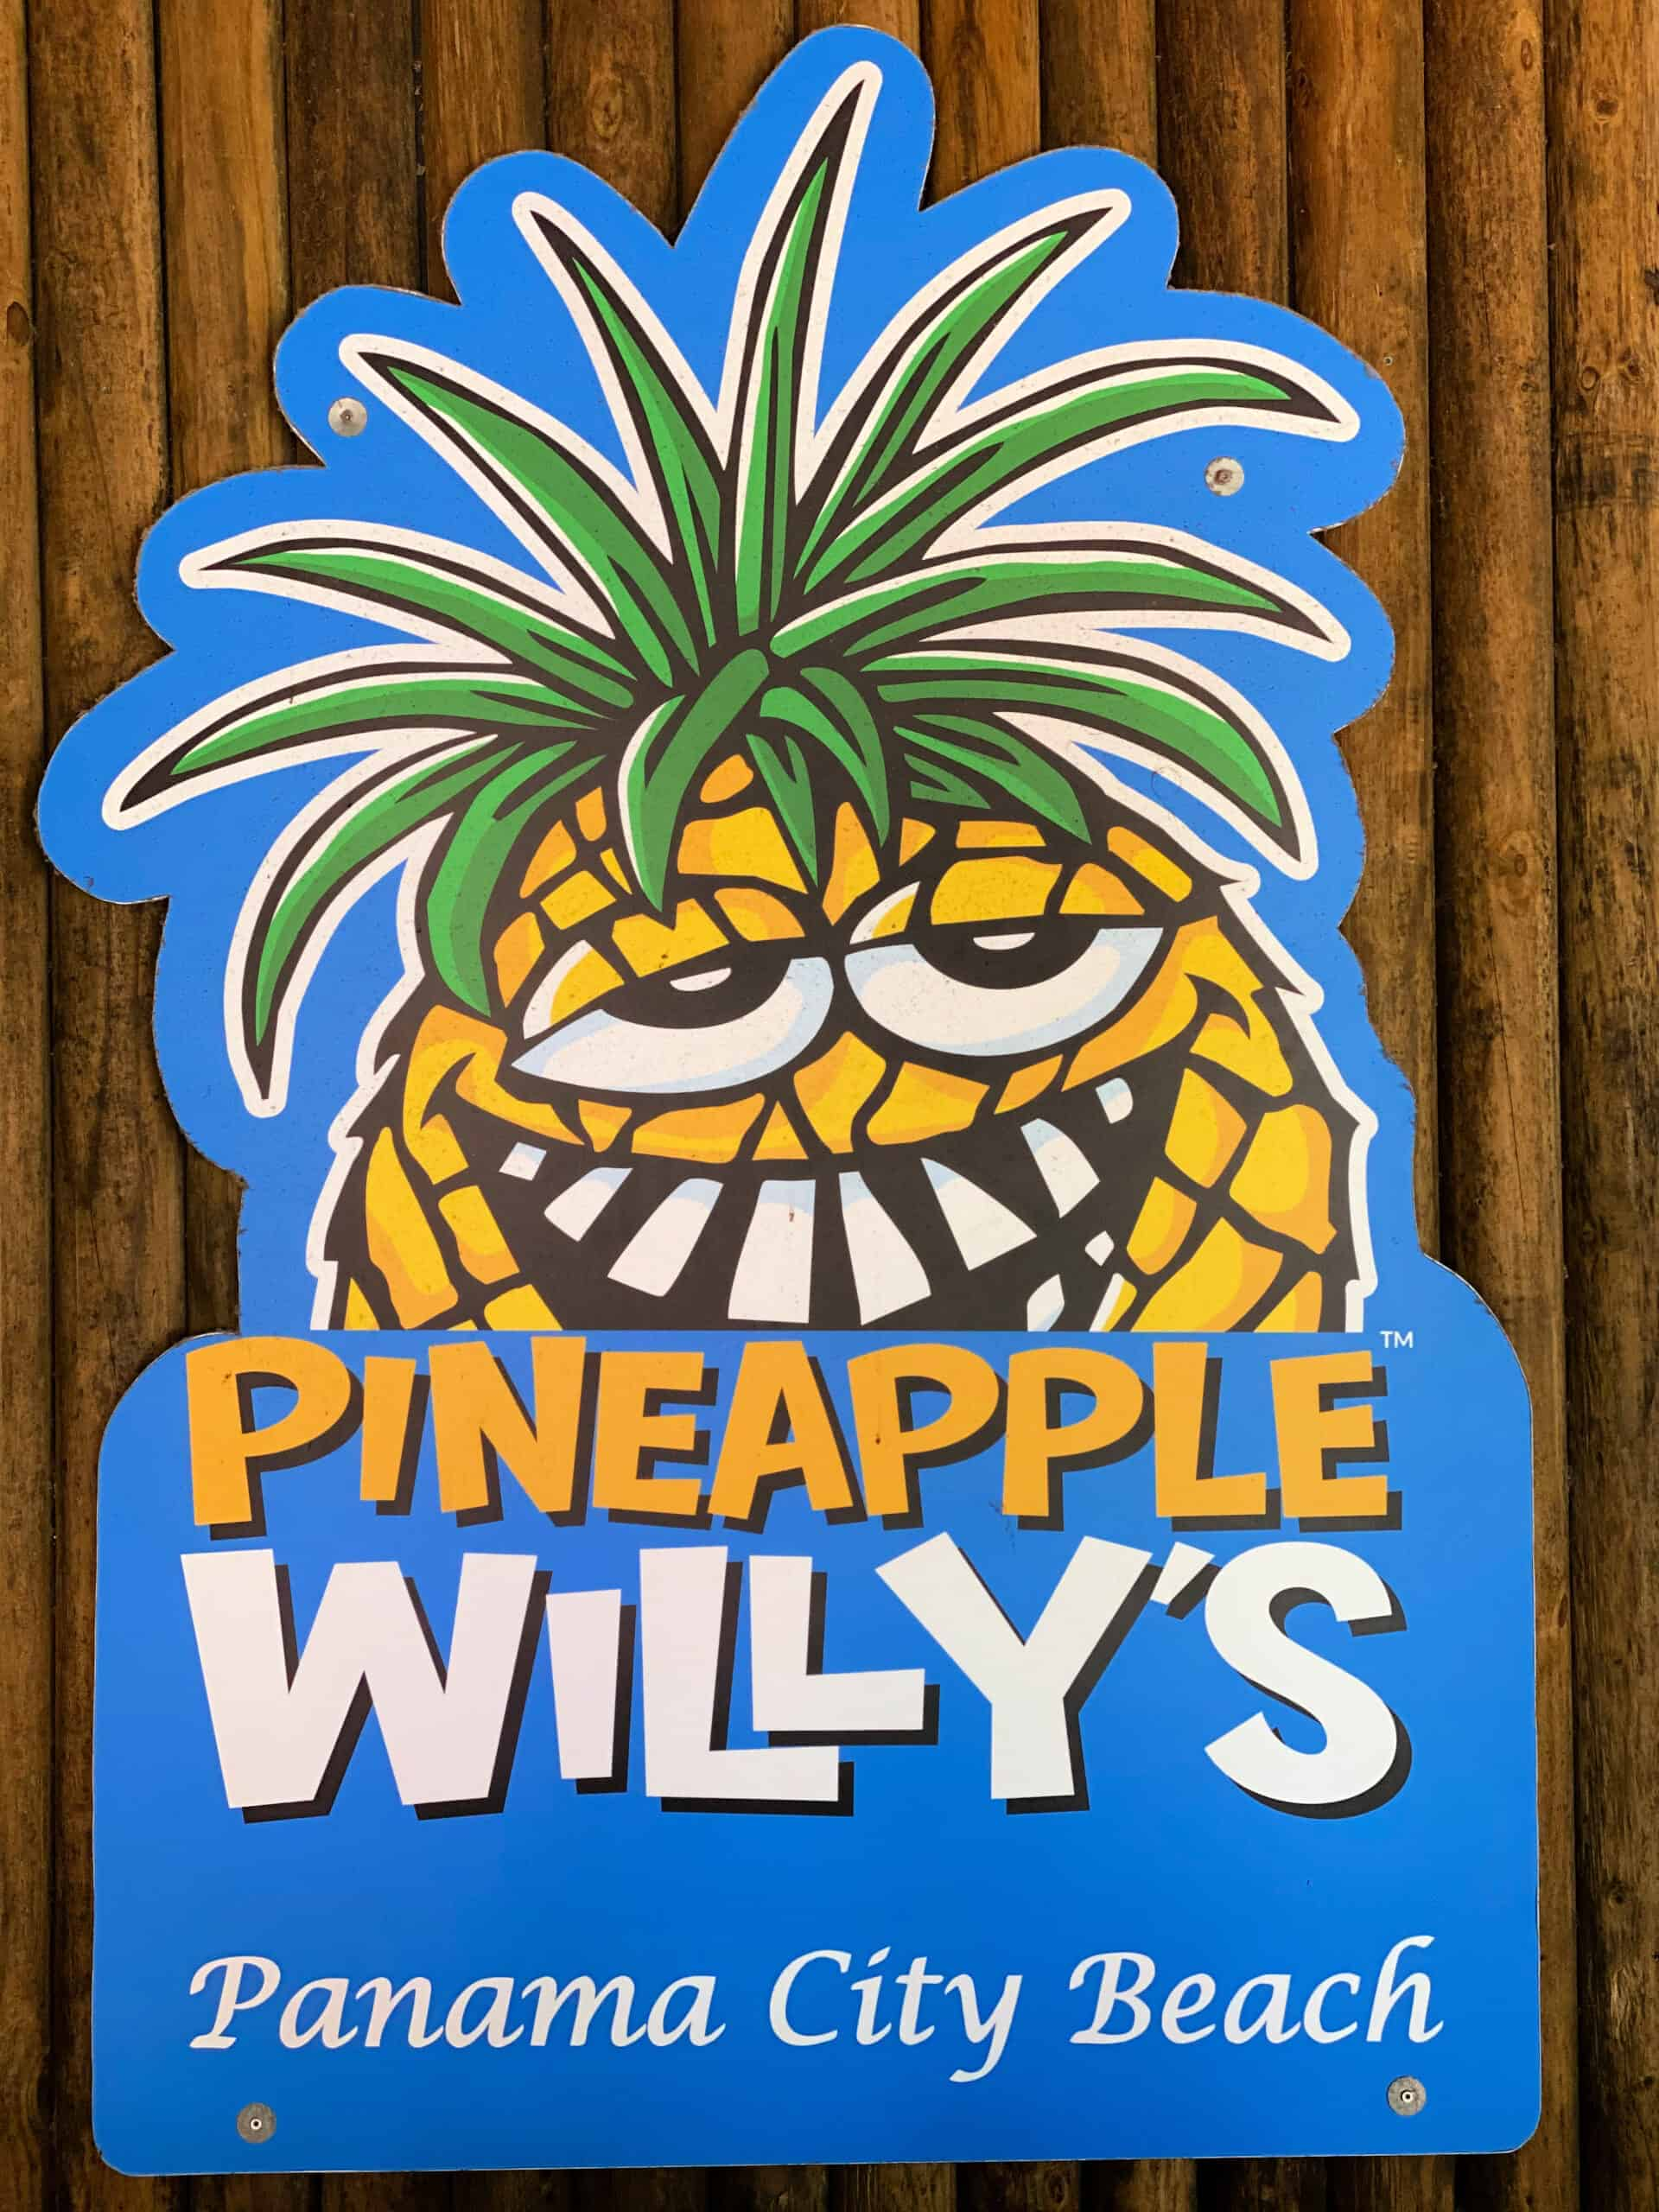 Pineapple Willy's sign